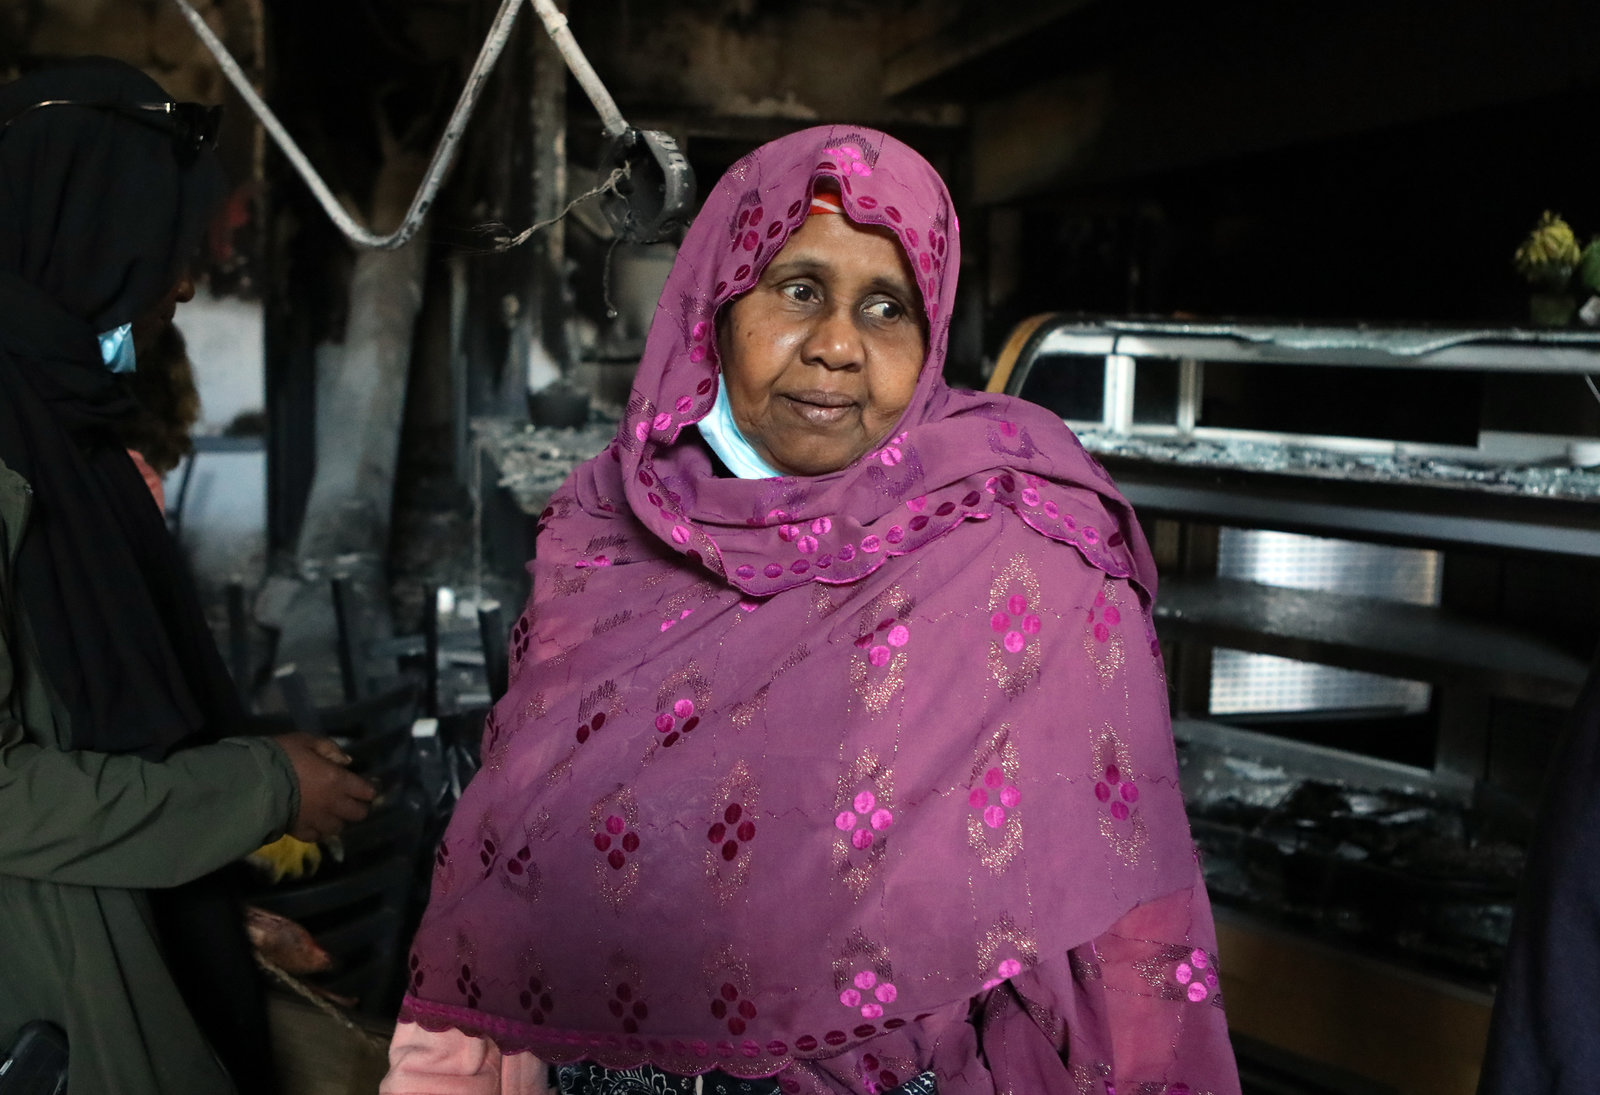 Safia Munye in a purple head scarf stands in front of burned restaurant equipment.